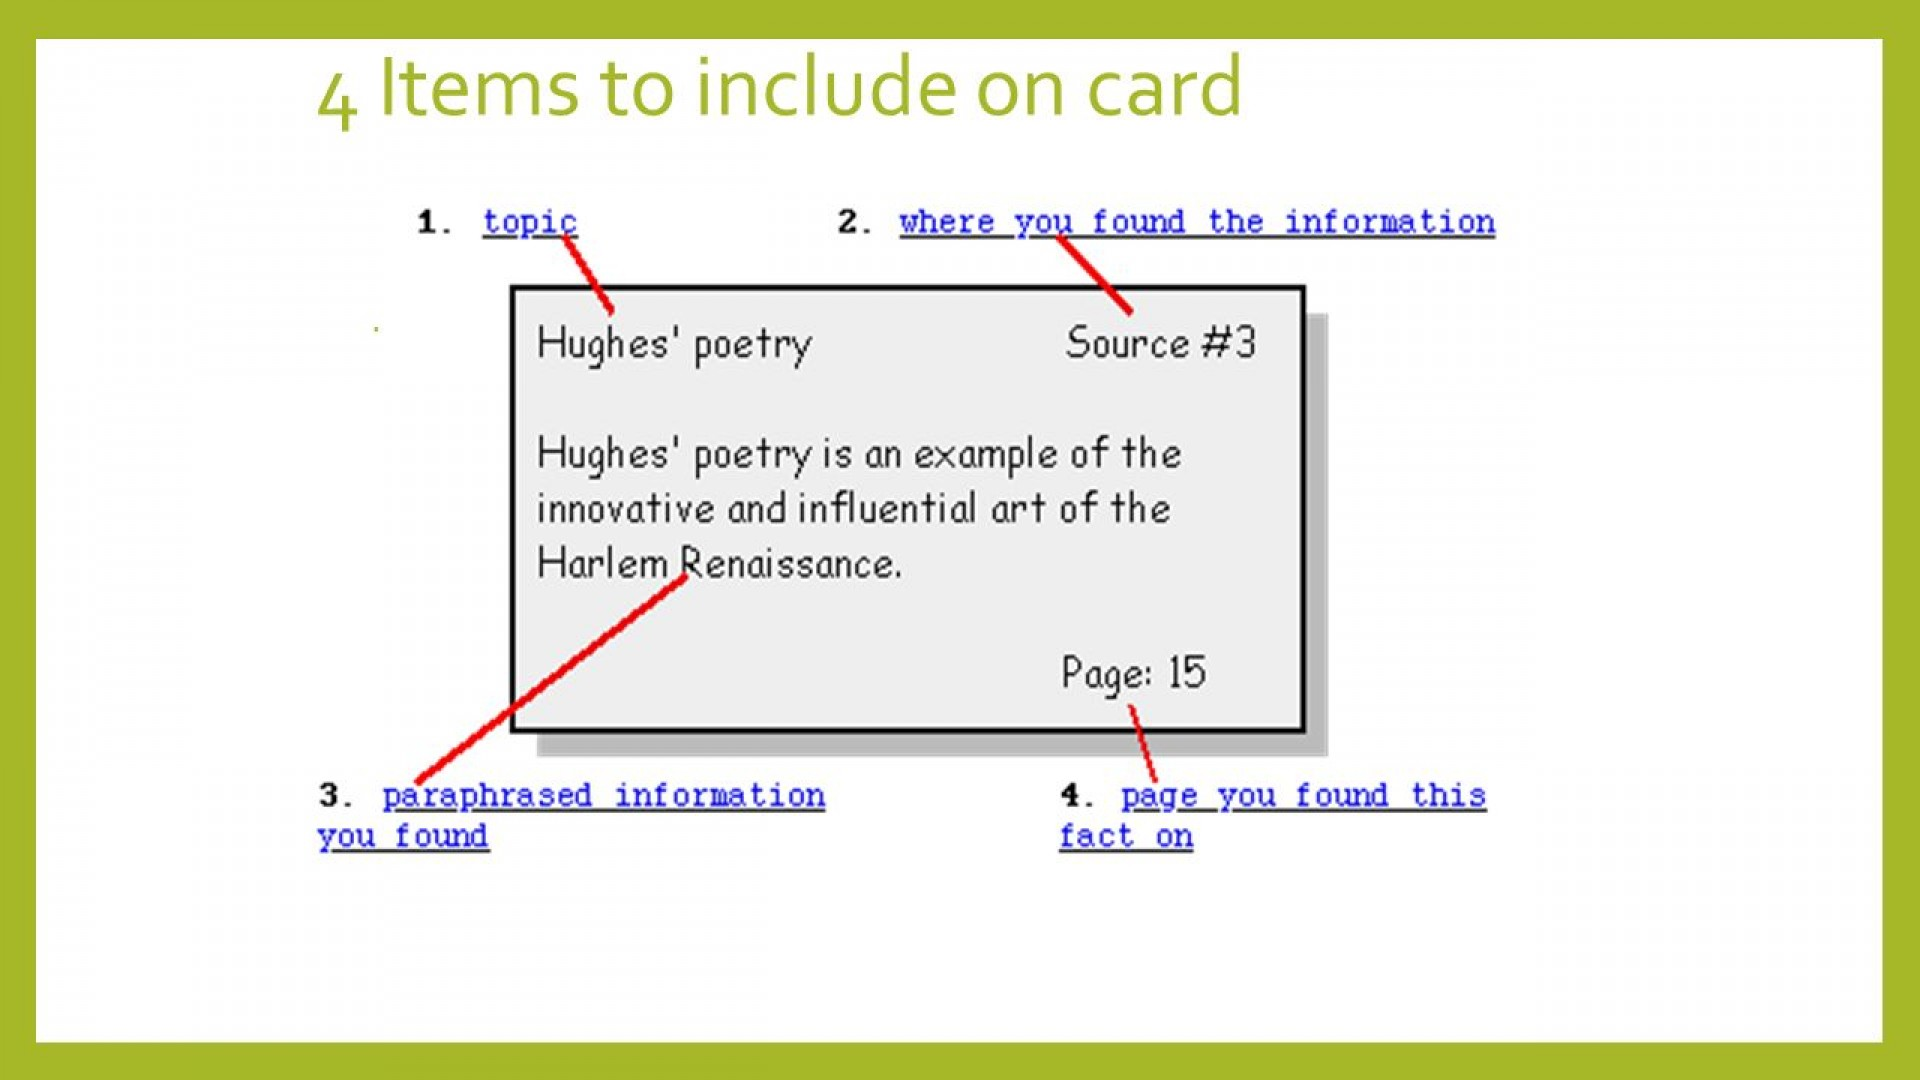 005 Slide 2 Notecards Research Phenomenal Paper For Mla Digital 1920